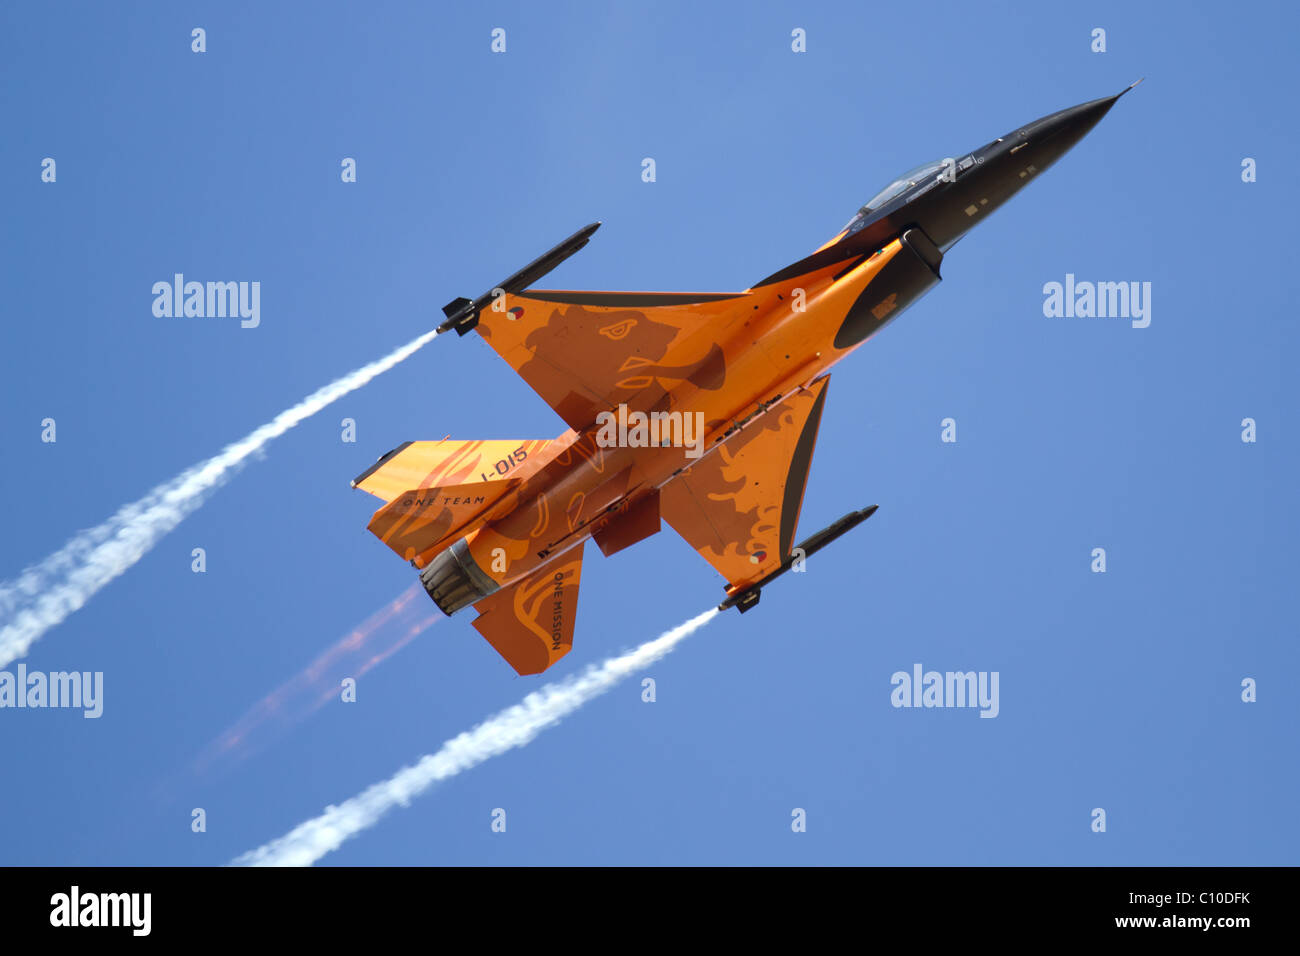 Royal Netherlands Air Force F-16 Fighting Falcon at the Royal International Air Tattoo 2010 in Fairford. Stock Photo